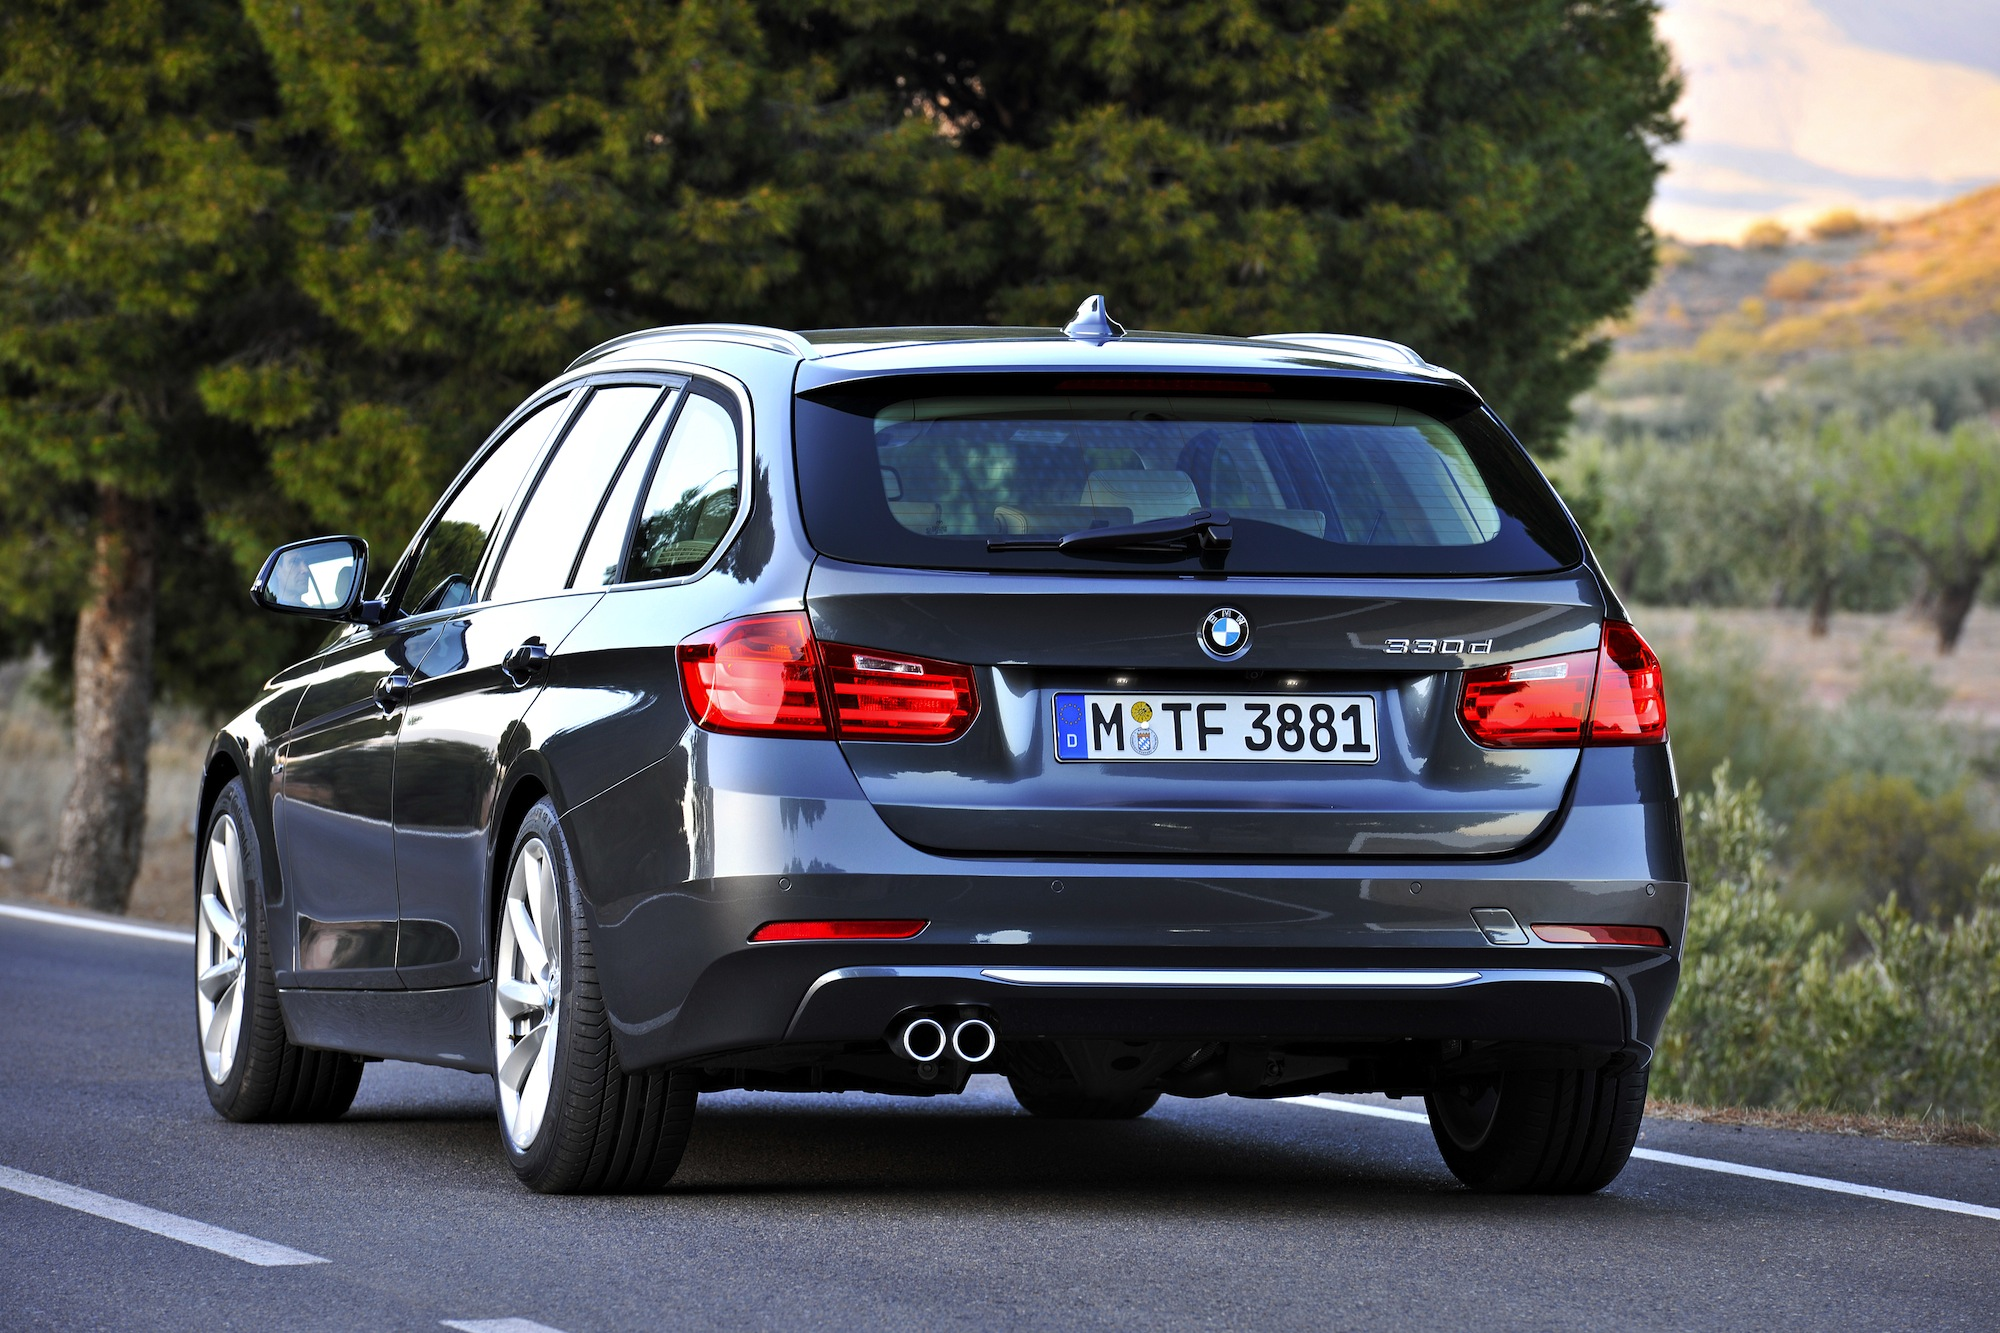 BMW 3 Series Touring Rear Published January 6 2015 At 2000 X 1333 In